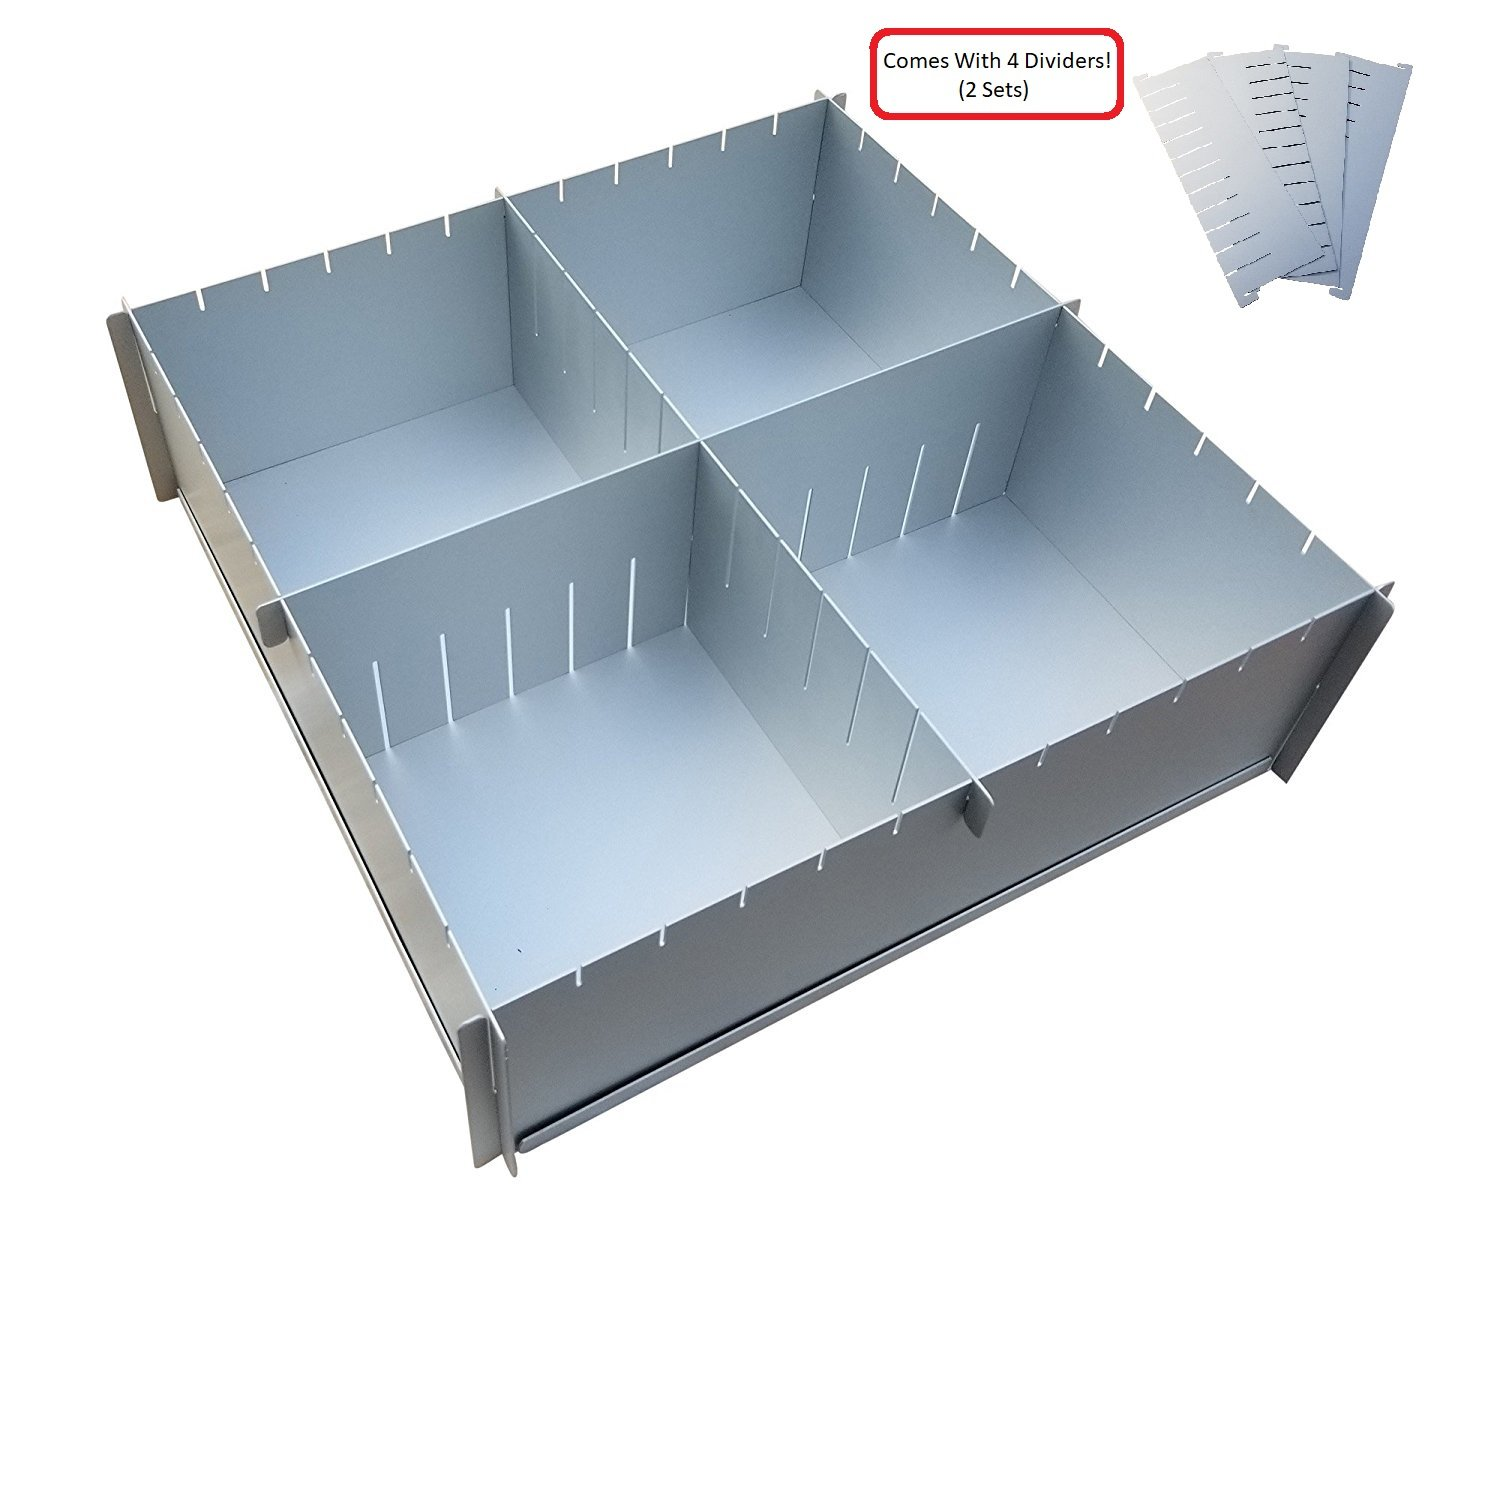 12'' x 4'' Deep Multisize Cake Pan With Extra Set Of Dividers - 4 Dividers Total - By H&L DesignWare by H&L DesignWare (Image #1)